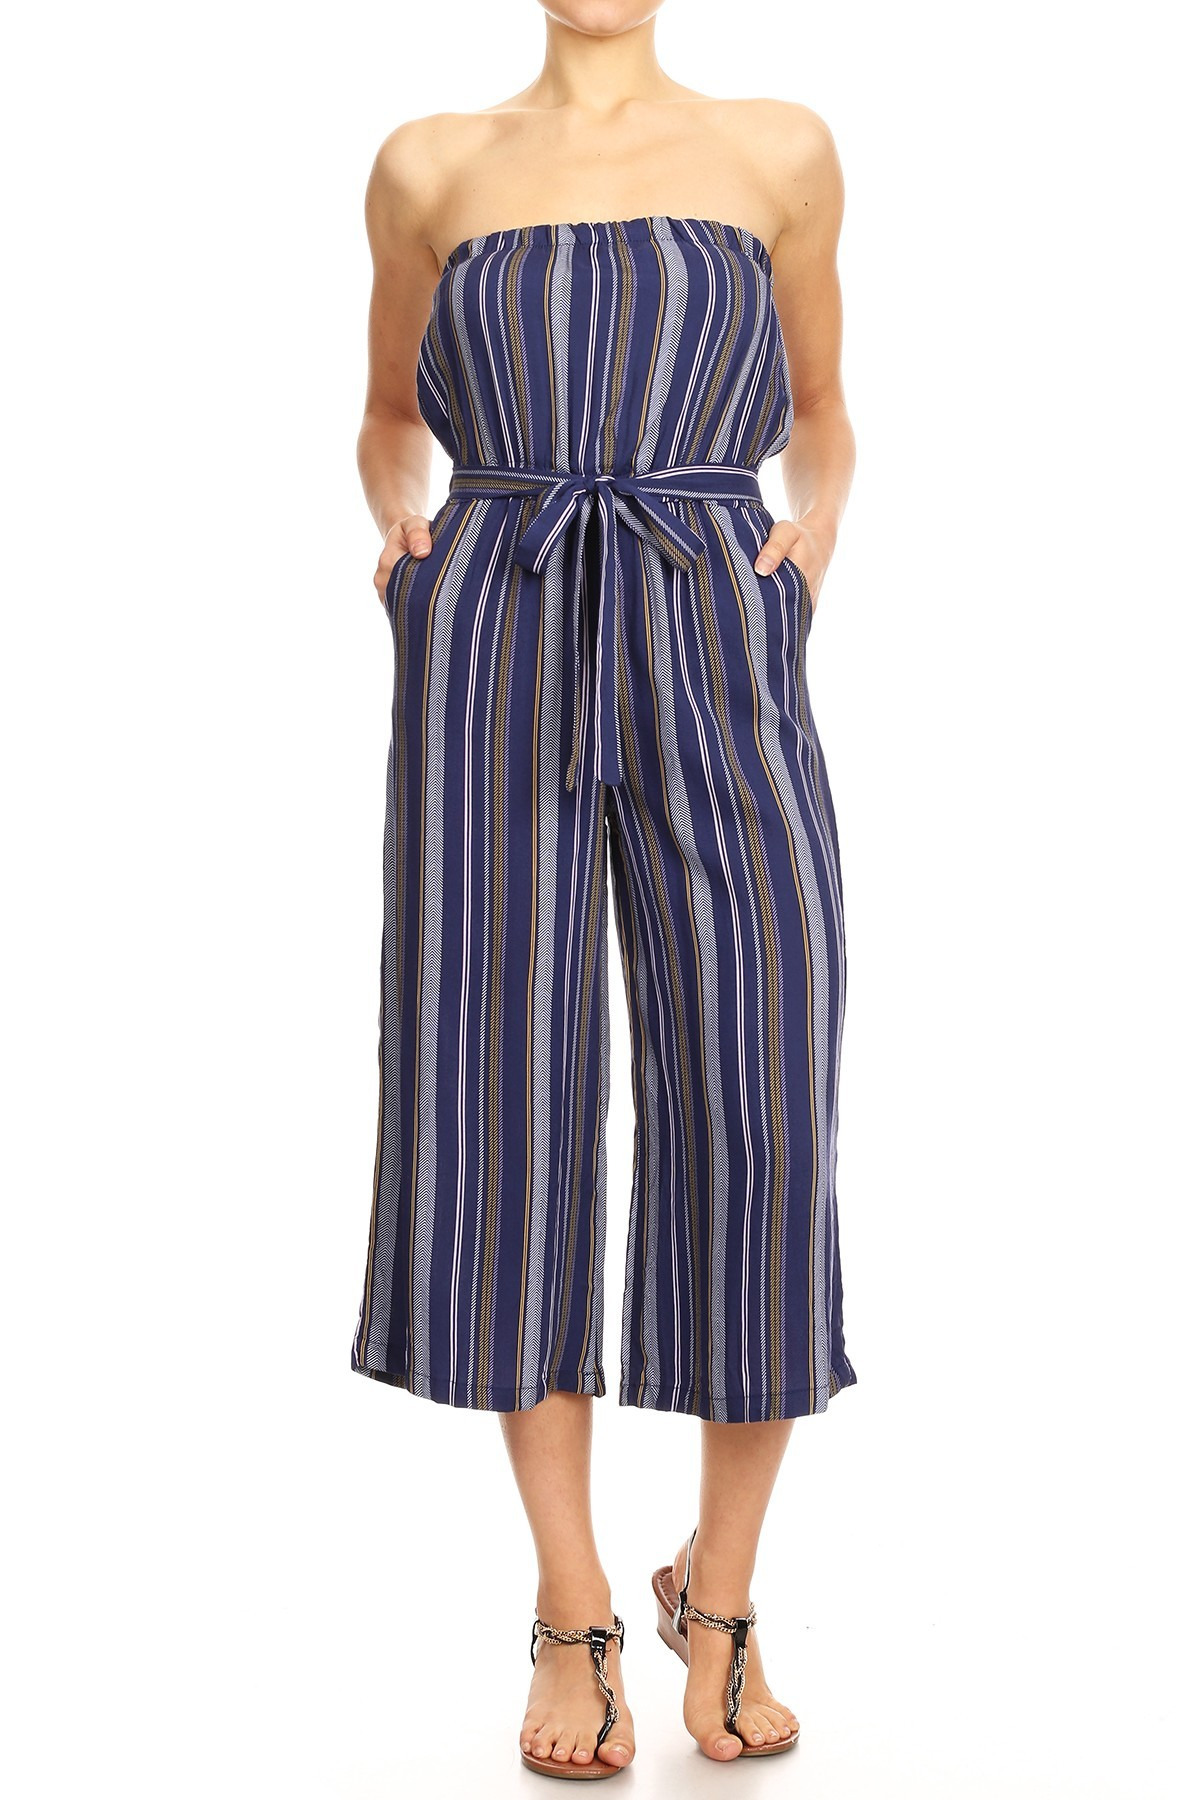 2560b6f72b2 NAVY IPNK WHITE STRIPE PRINT RAYON TUBE TOP CROPPED JUMPSUIT 9JPS04-08